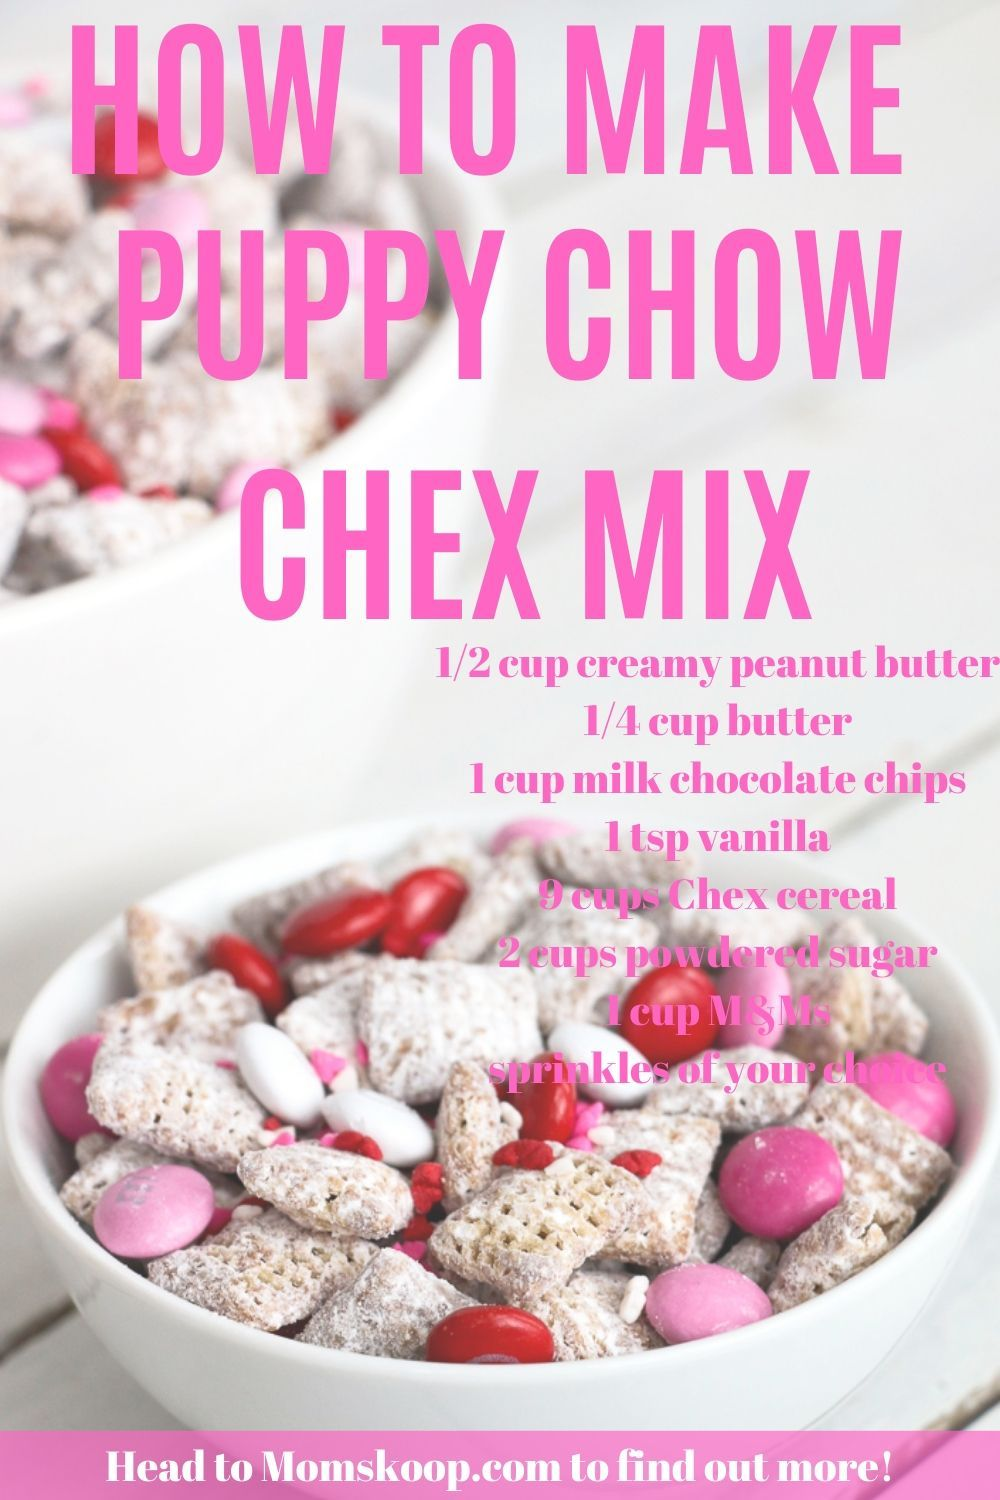 Valentine's Day Puppy Chow is one of those tasty recipes